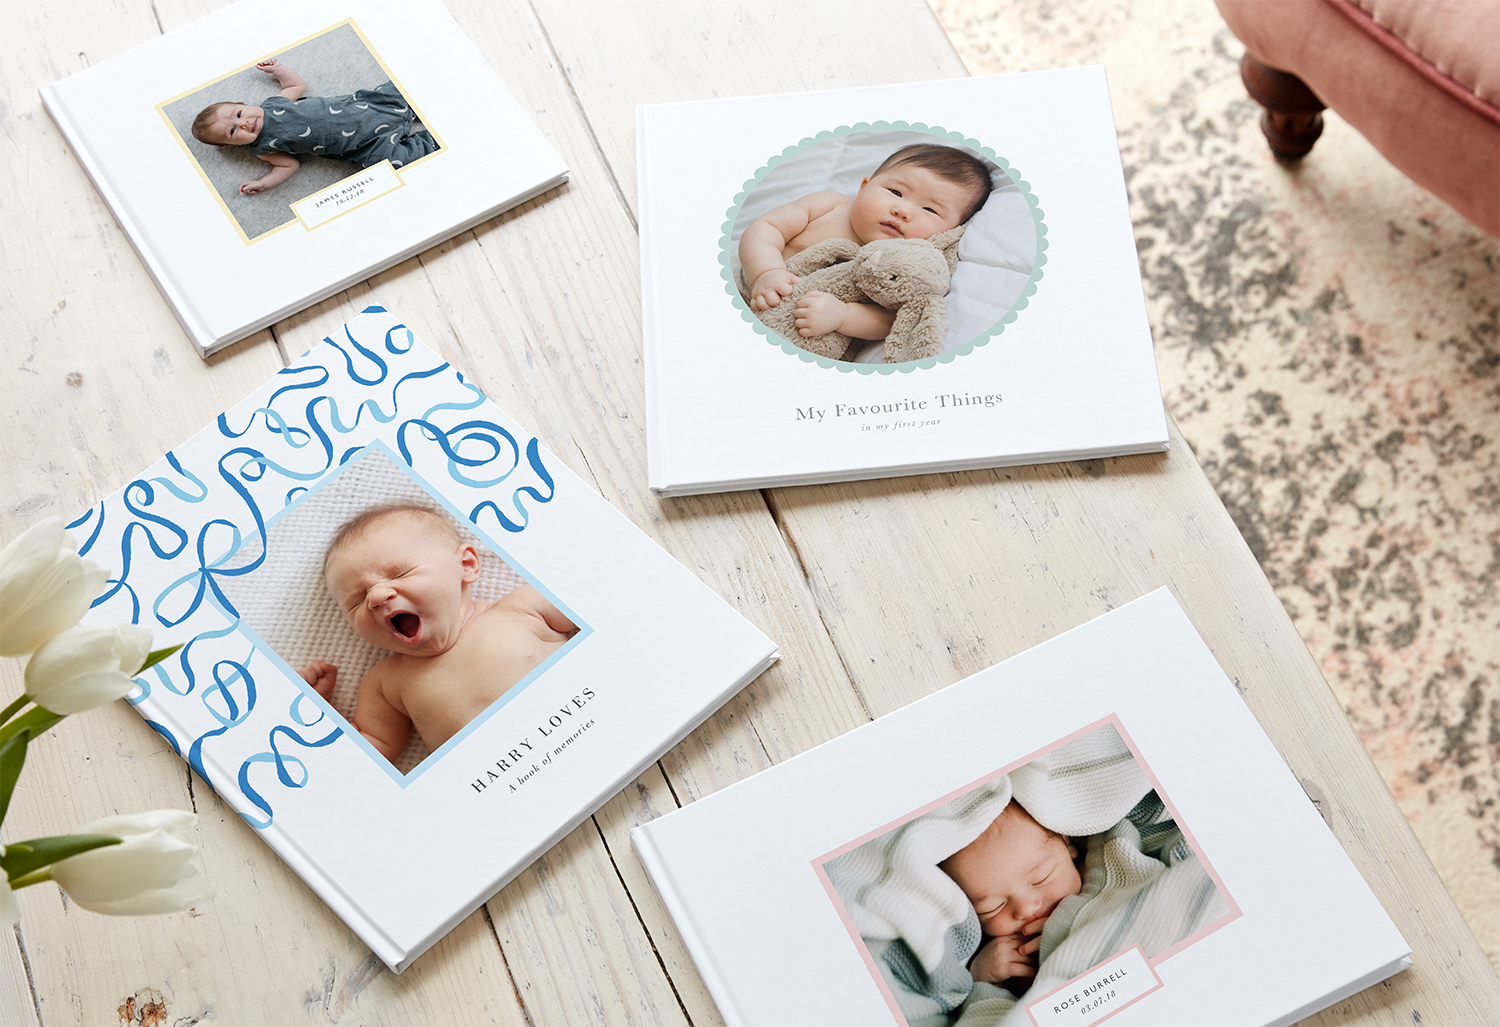 baby photo book idea - babys favourites